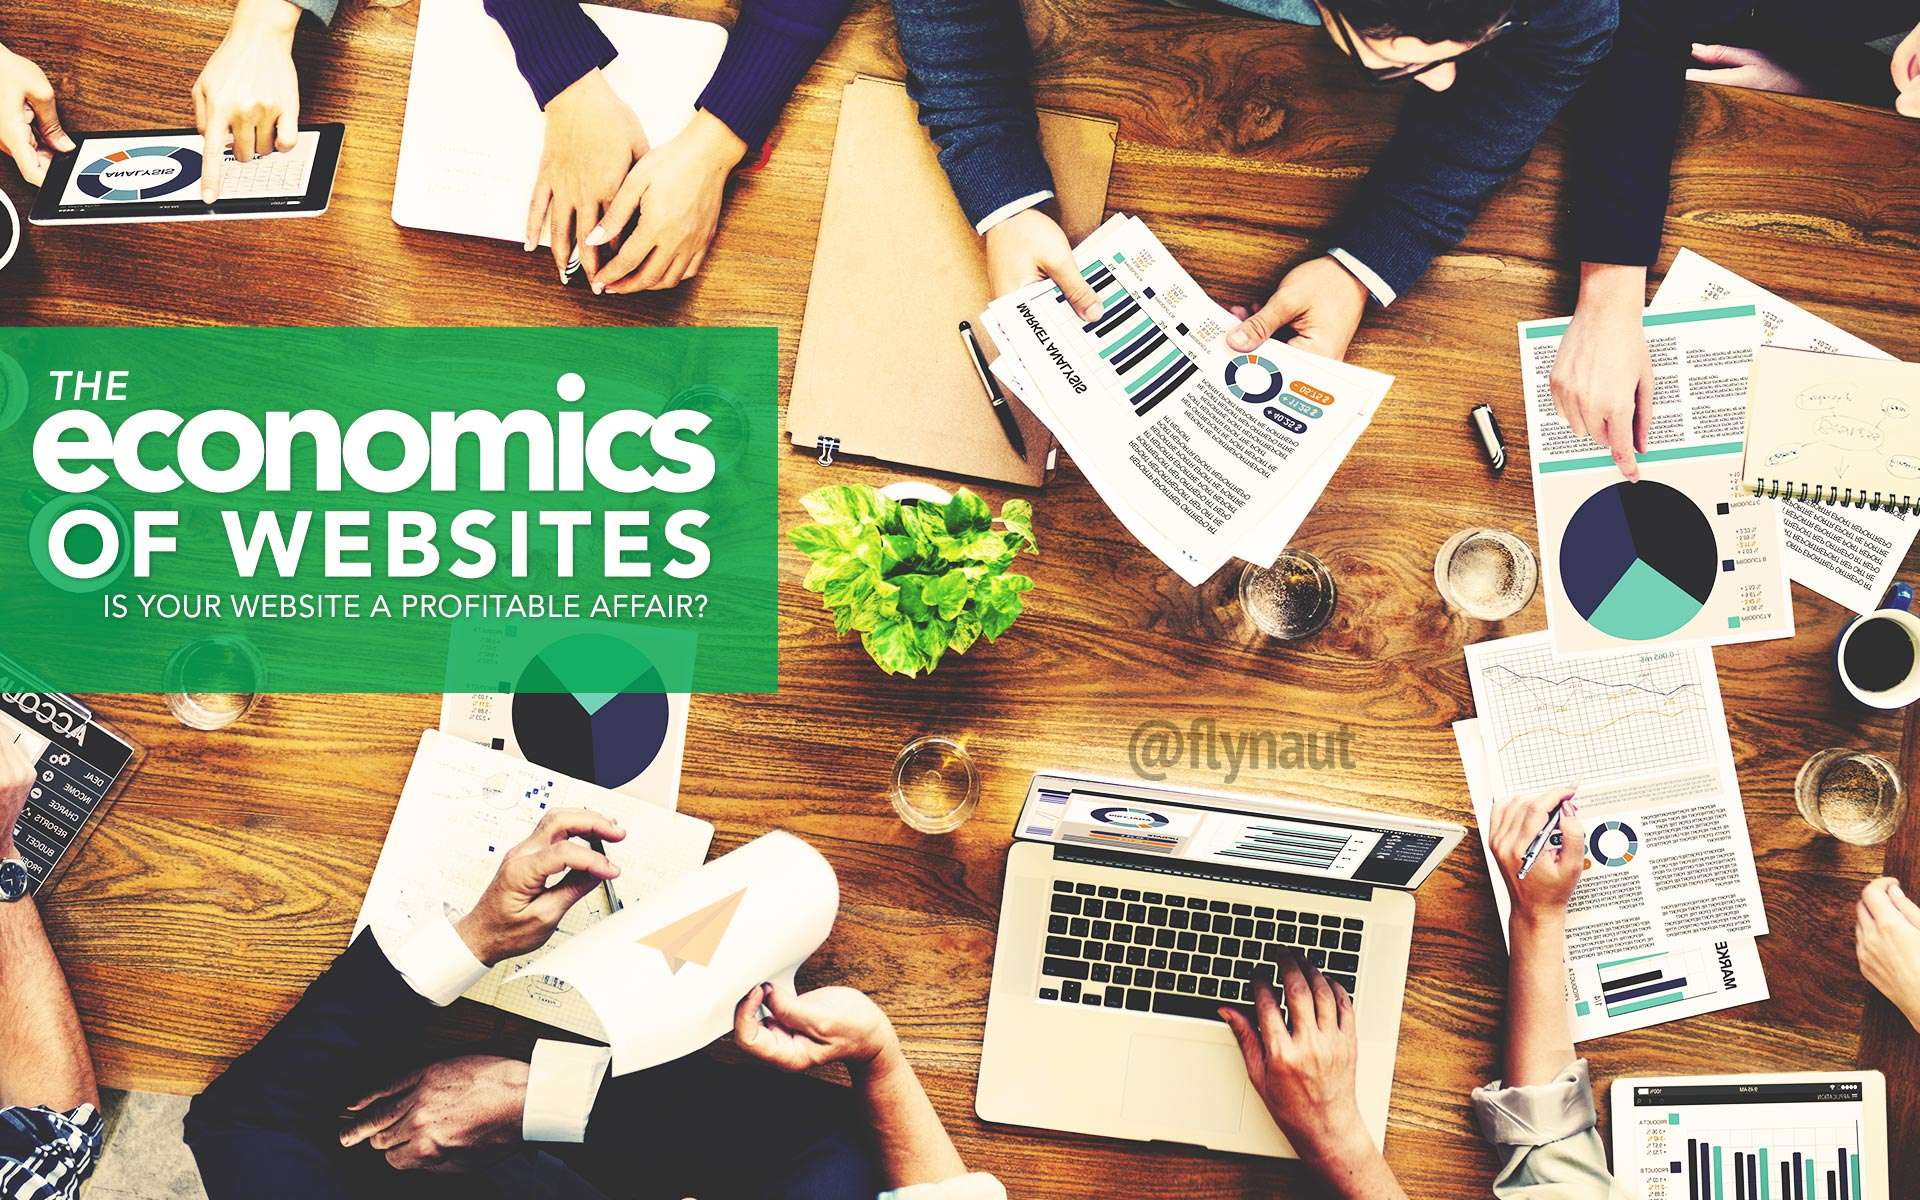 The Economics of Websites: Is Your Website A Profitable Affair?